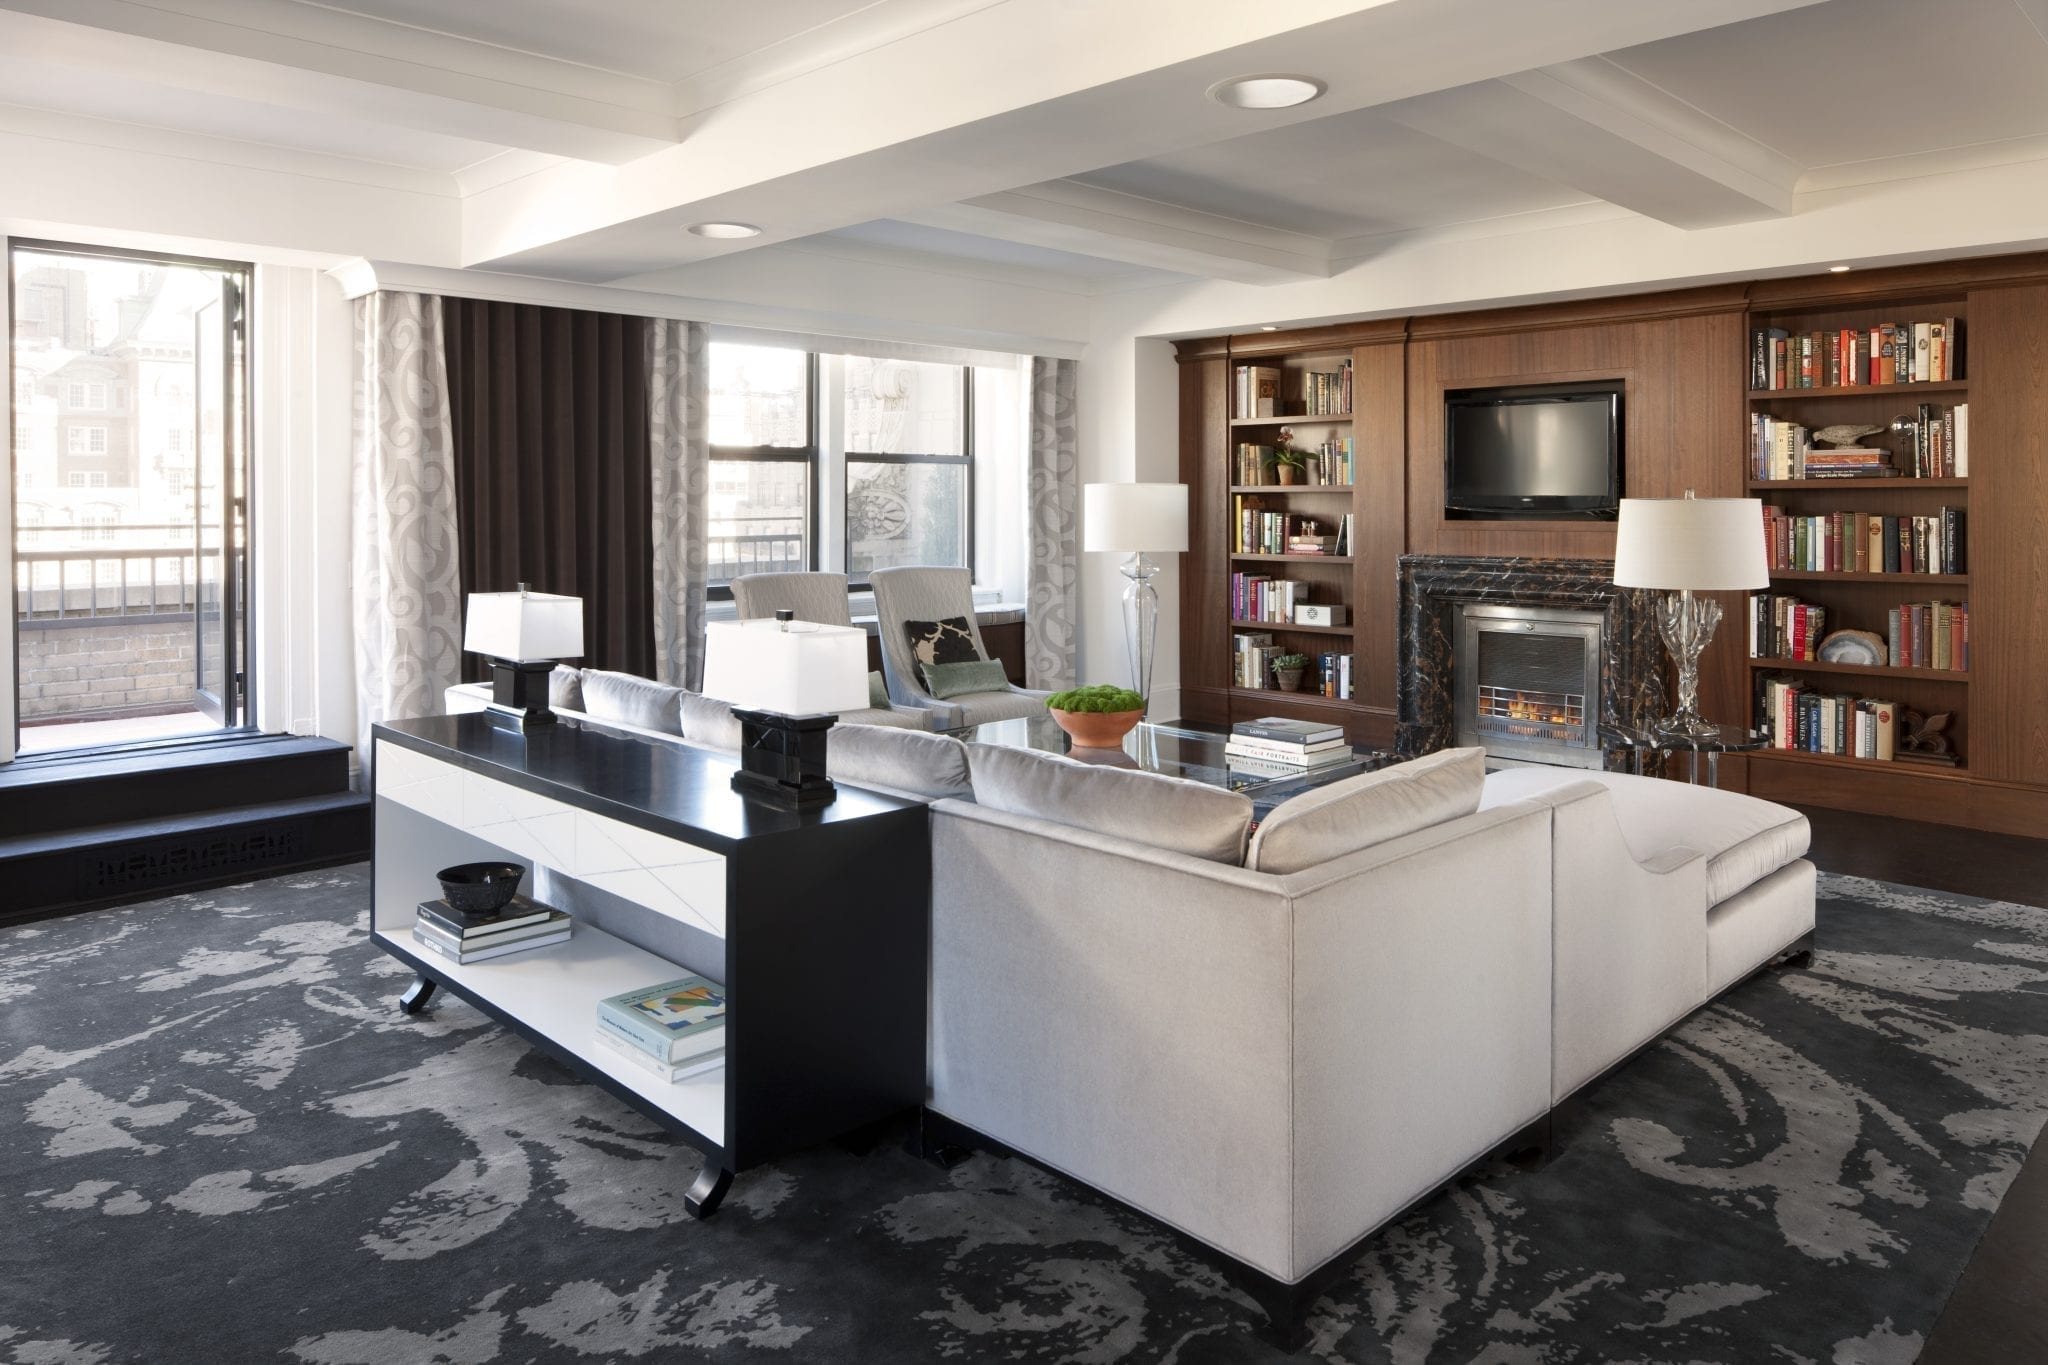 Perspective view of the living room area of The Surrey Hotel's Presidential Suite. Behind the L-shaped couch is a door leading out to the terrace. Across from the seating area is a wall panel with bookcases and HD TV inset. A lit fireplace is below the TV.